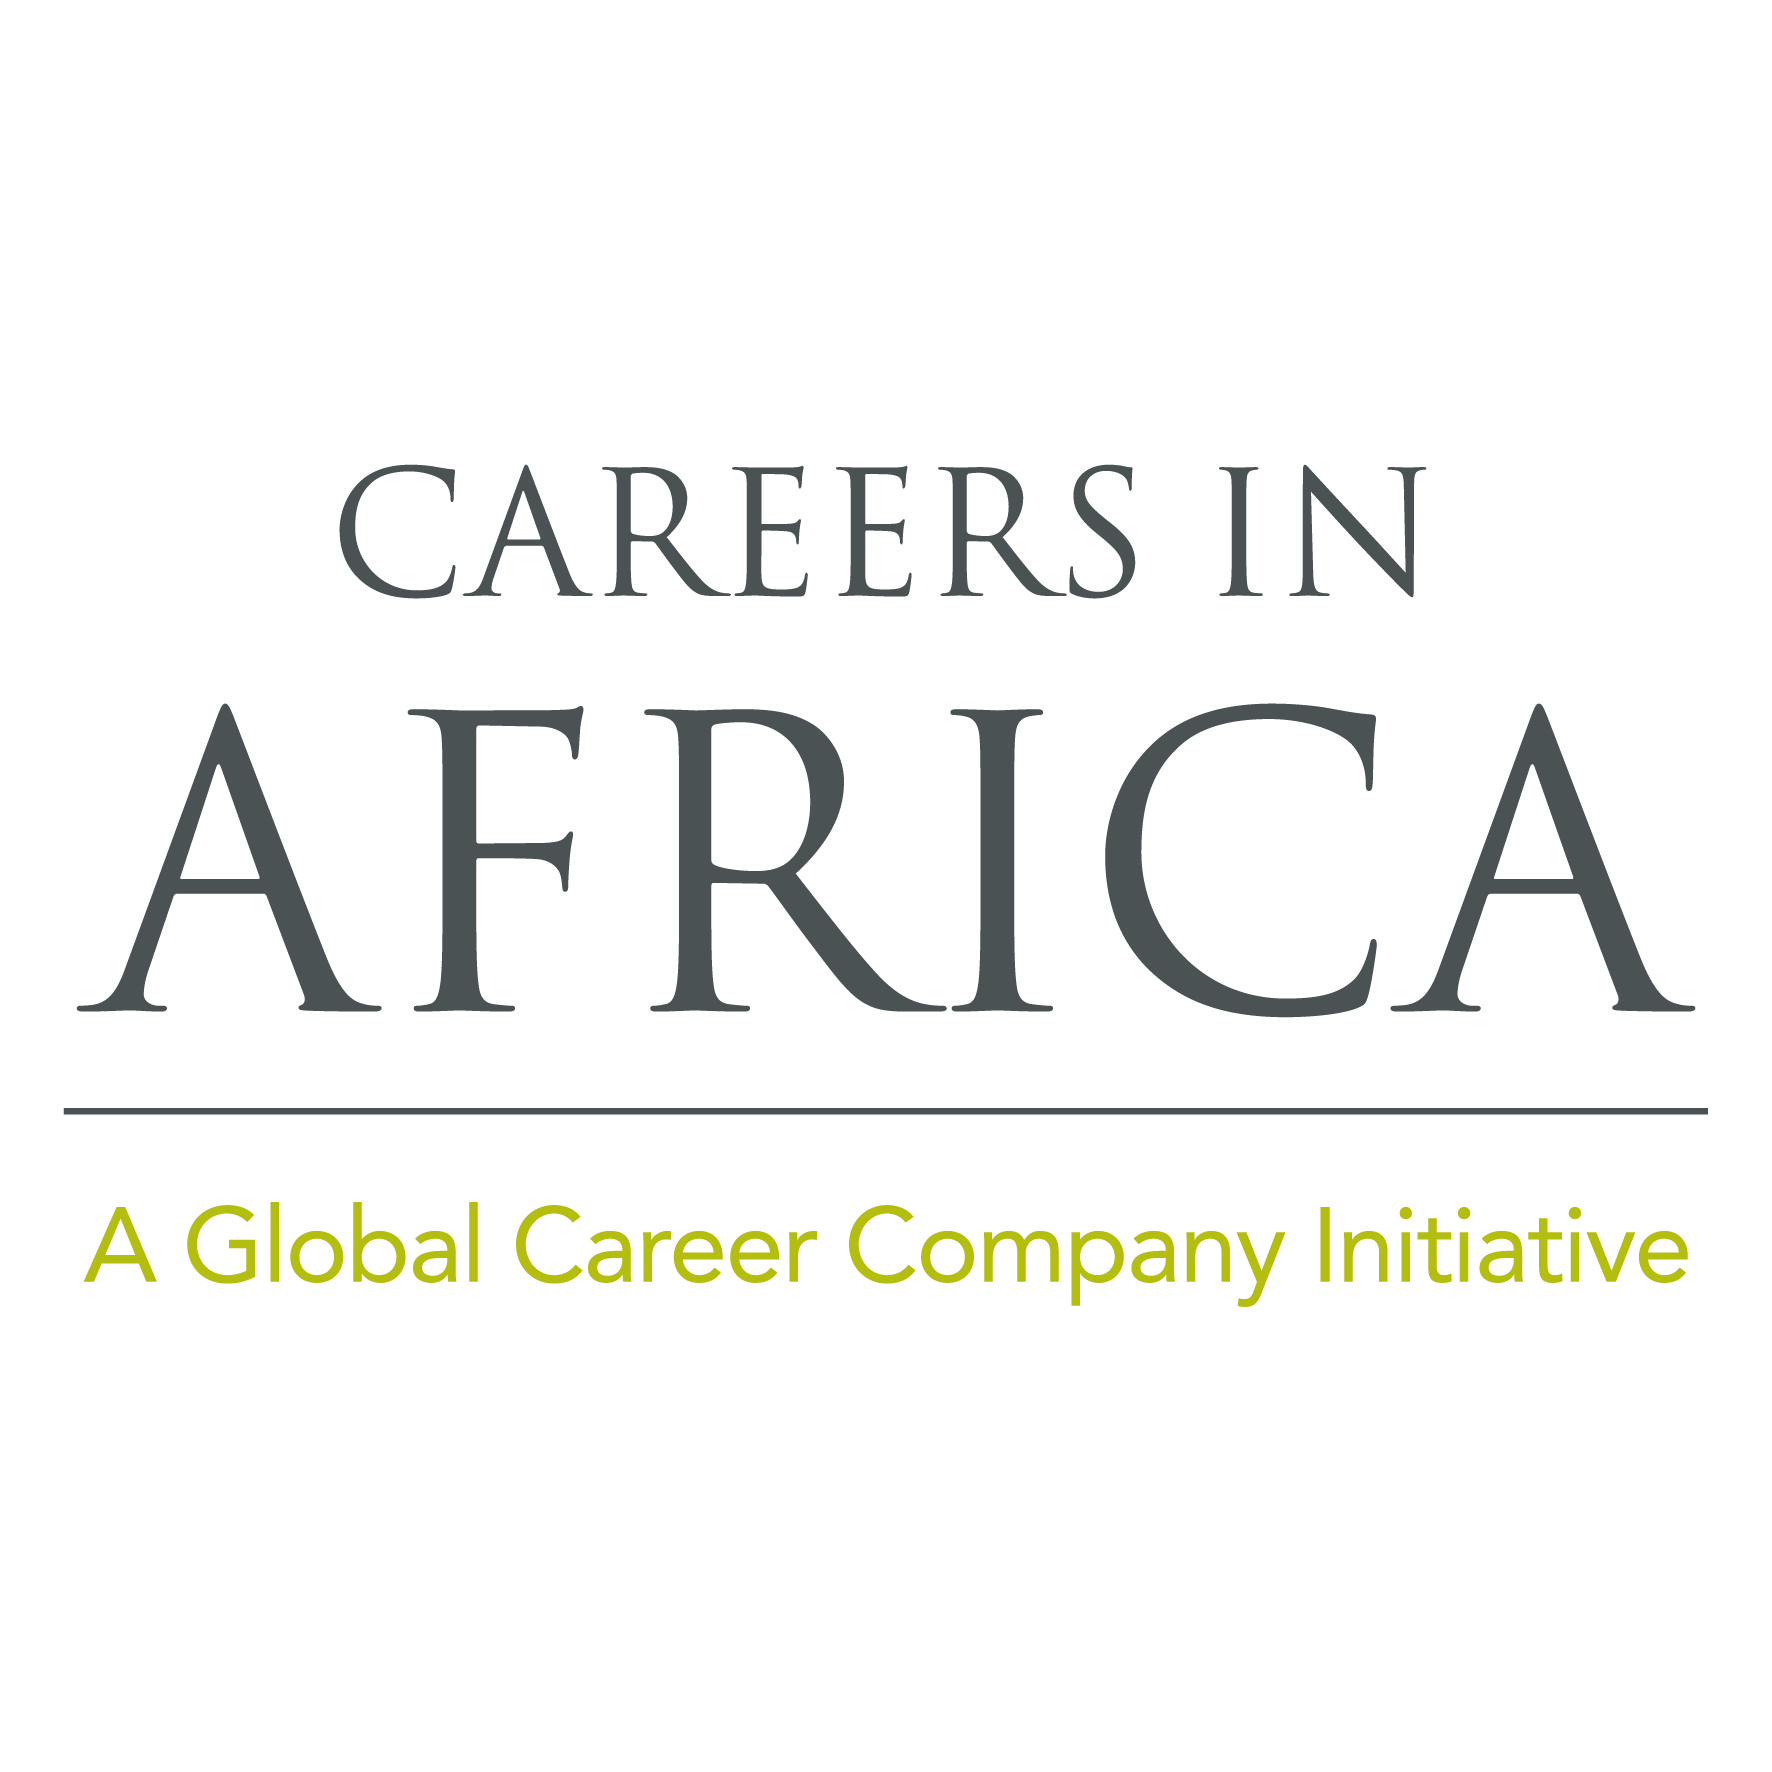 Careers in Africa Colour-01.png